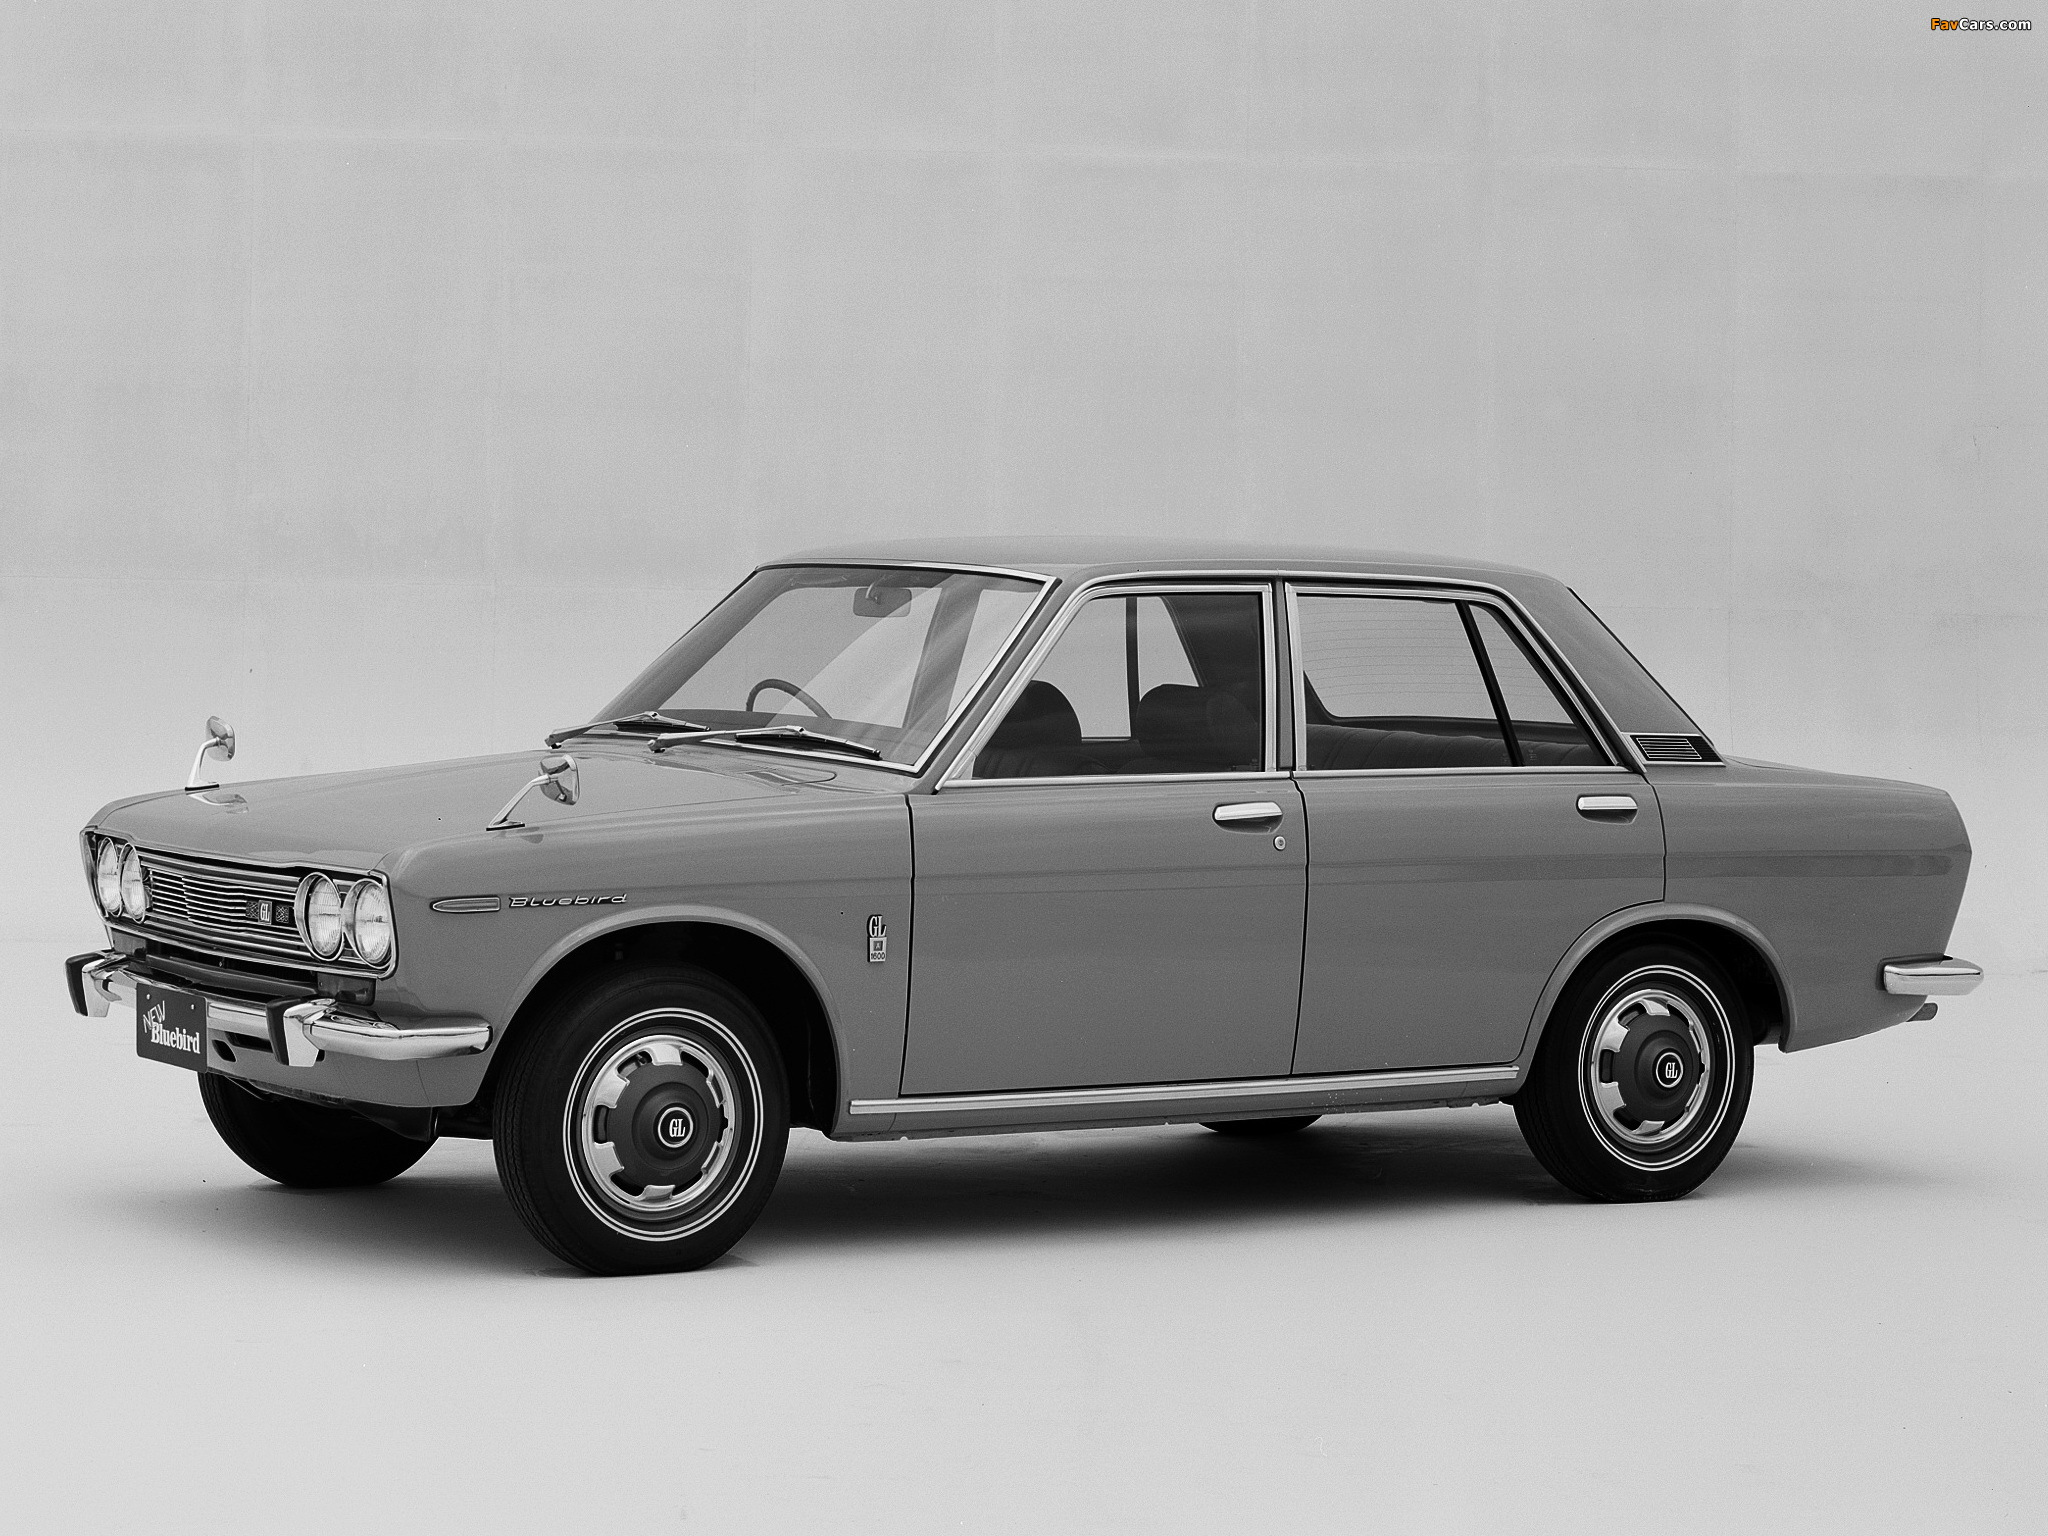 Datsun Bluebird 4 door Sedan 510 196772 wallpapers 2048x1536